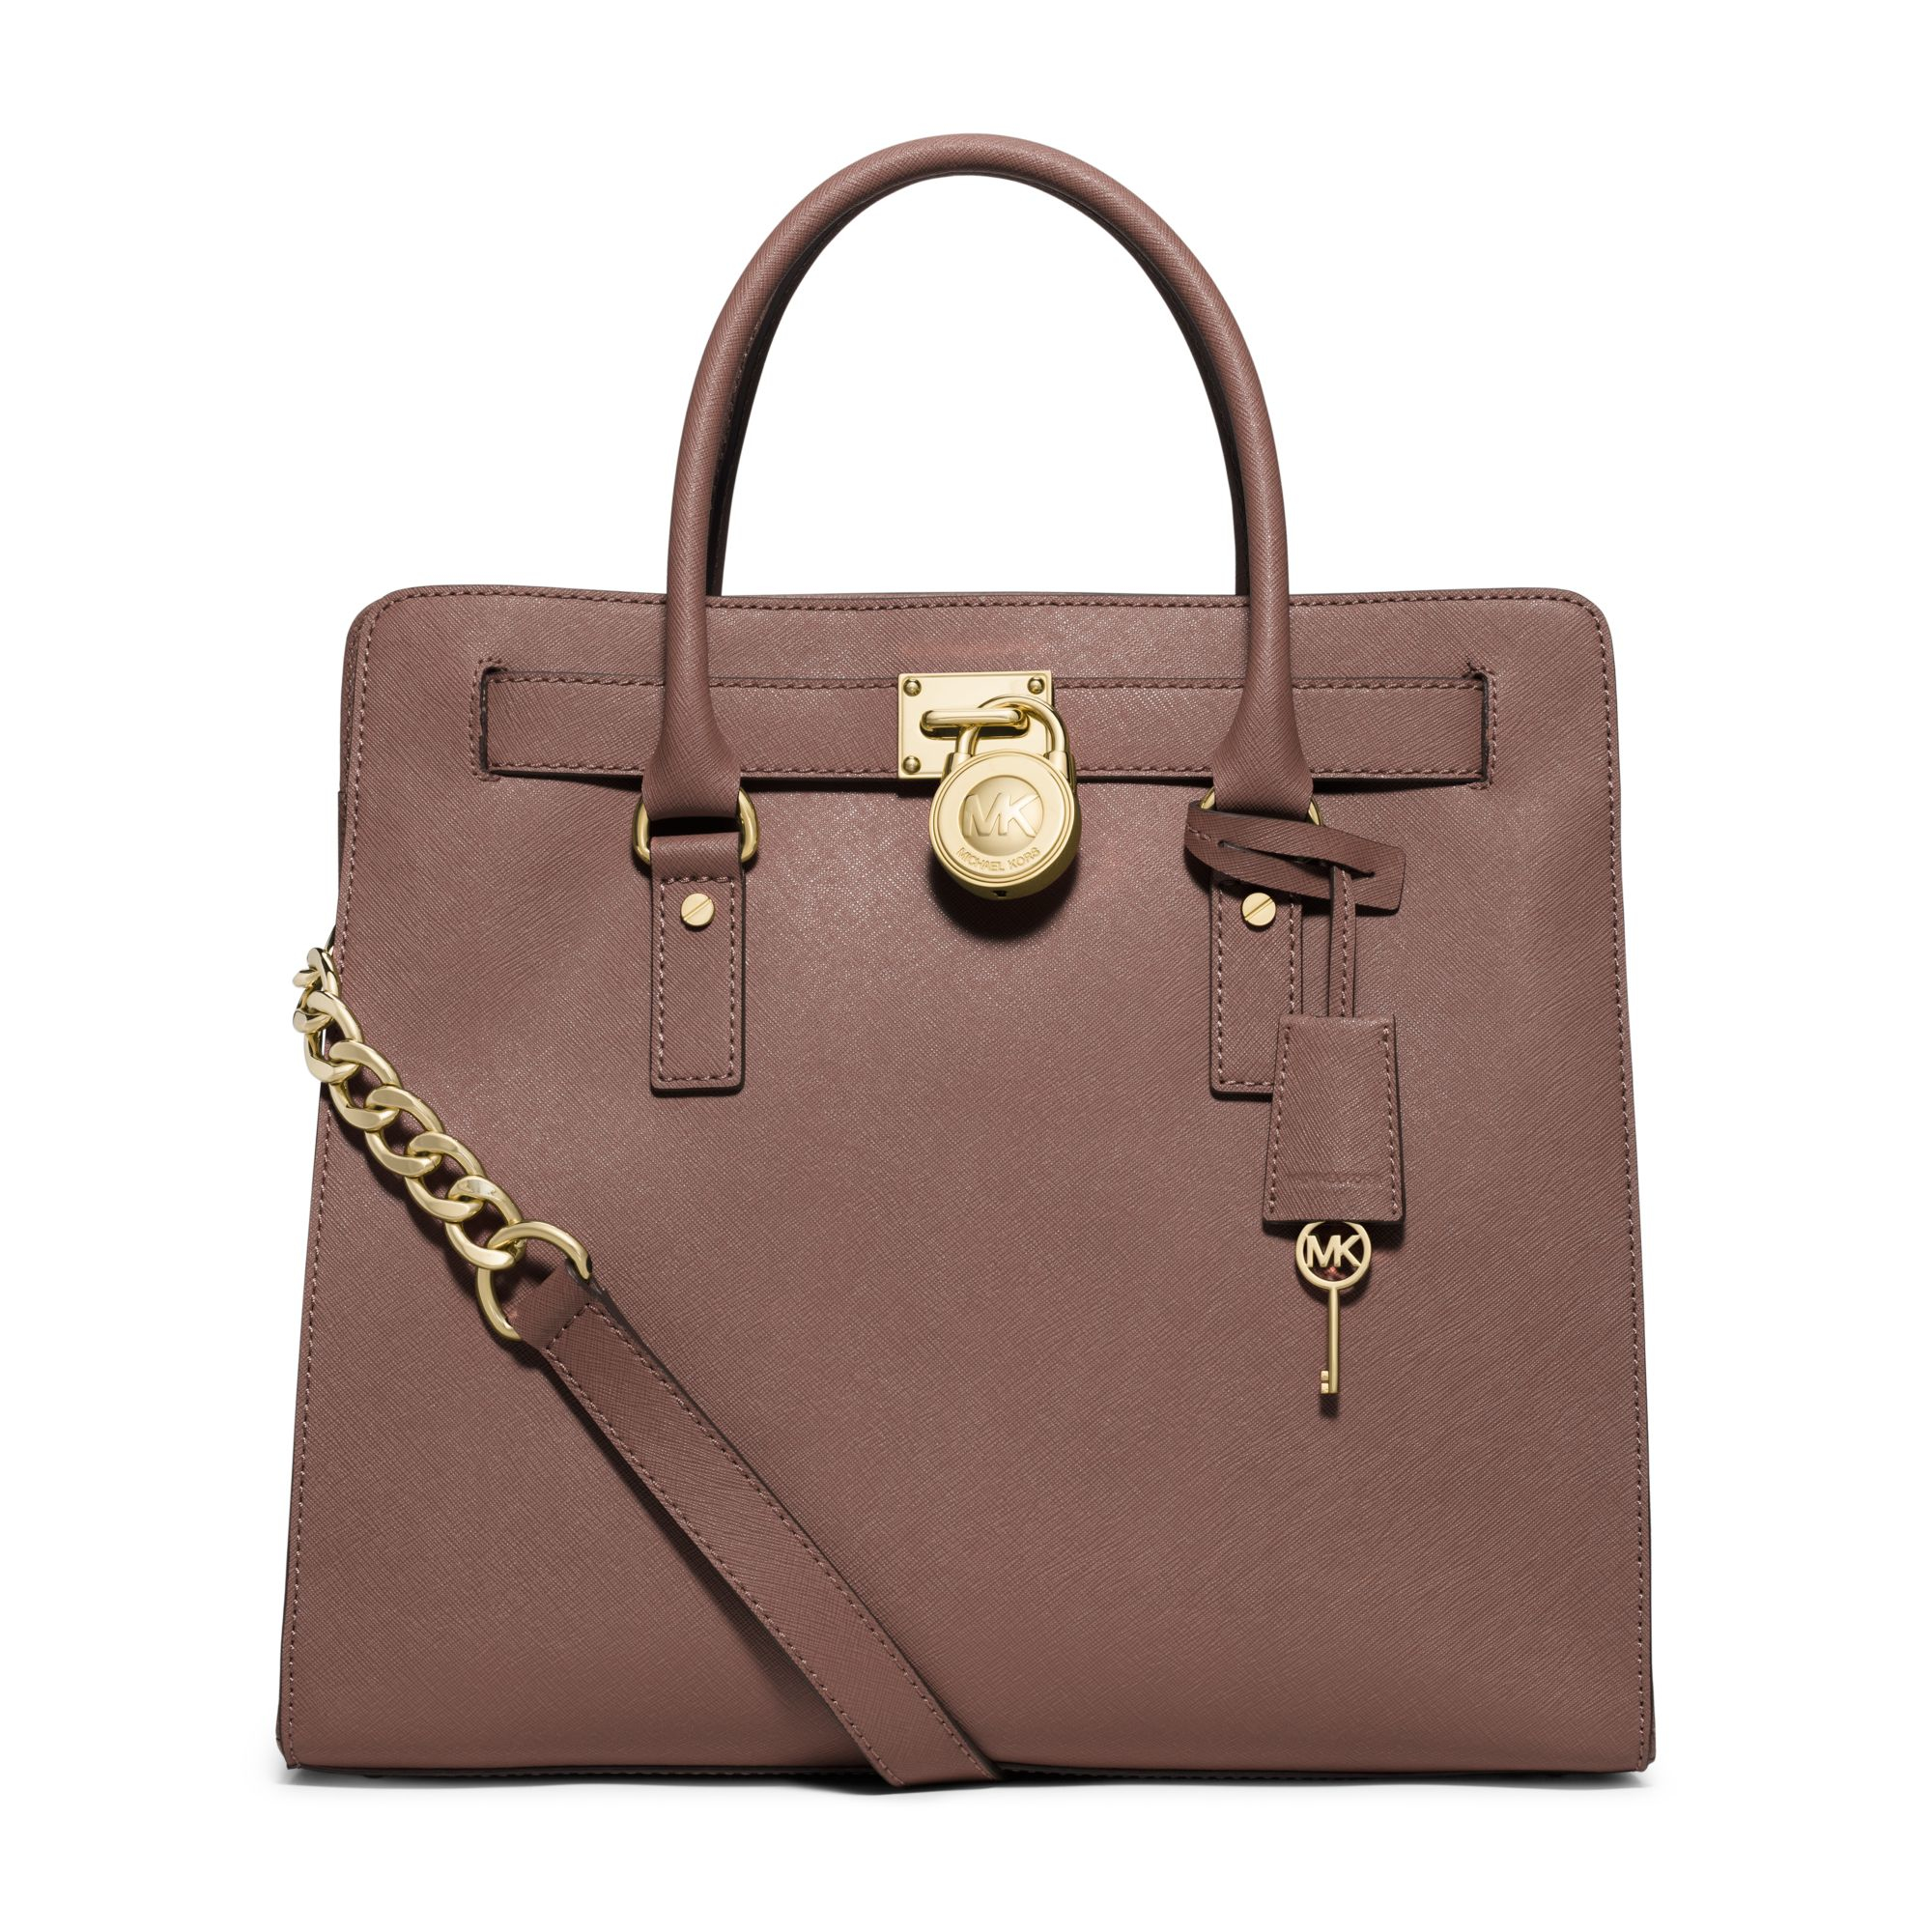 ca9ce59e31e0 Michael Kors Saffiano Tote Large | Stanford Center for Opportunity ...